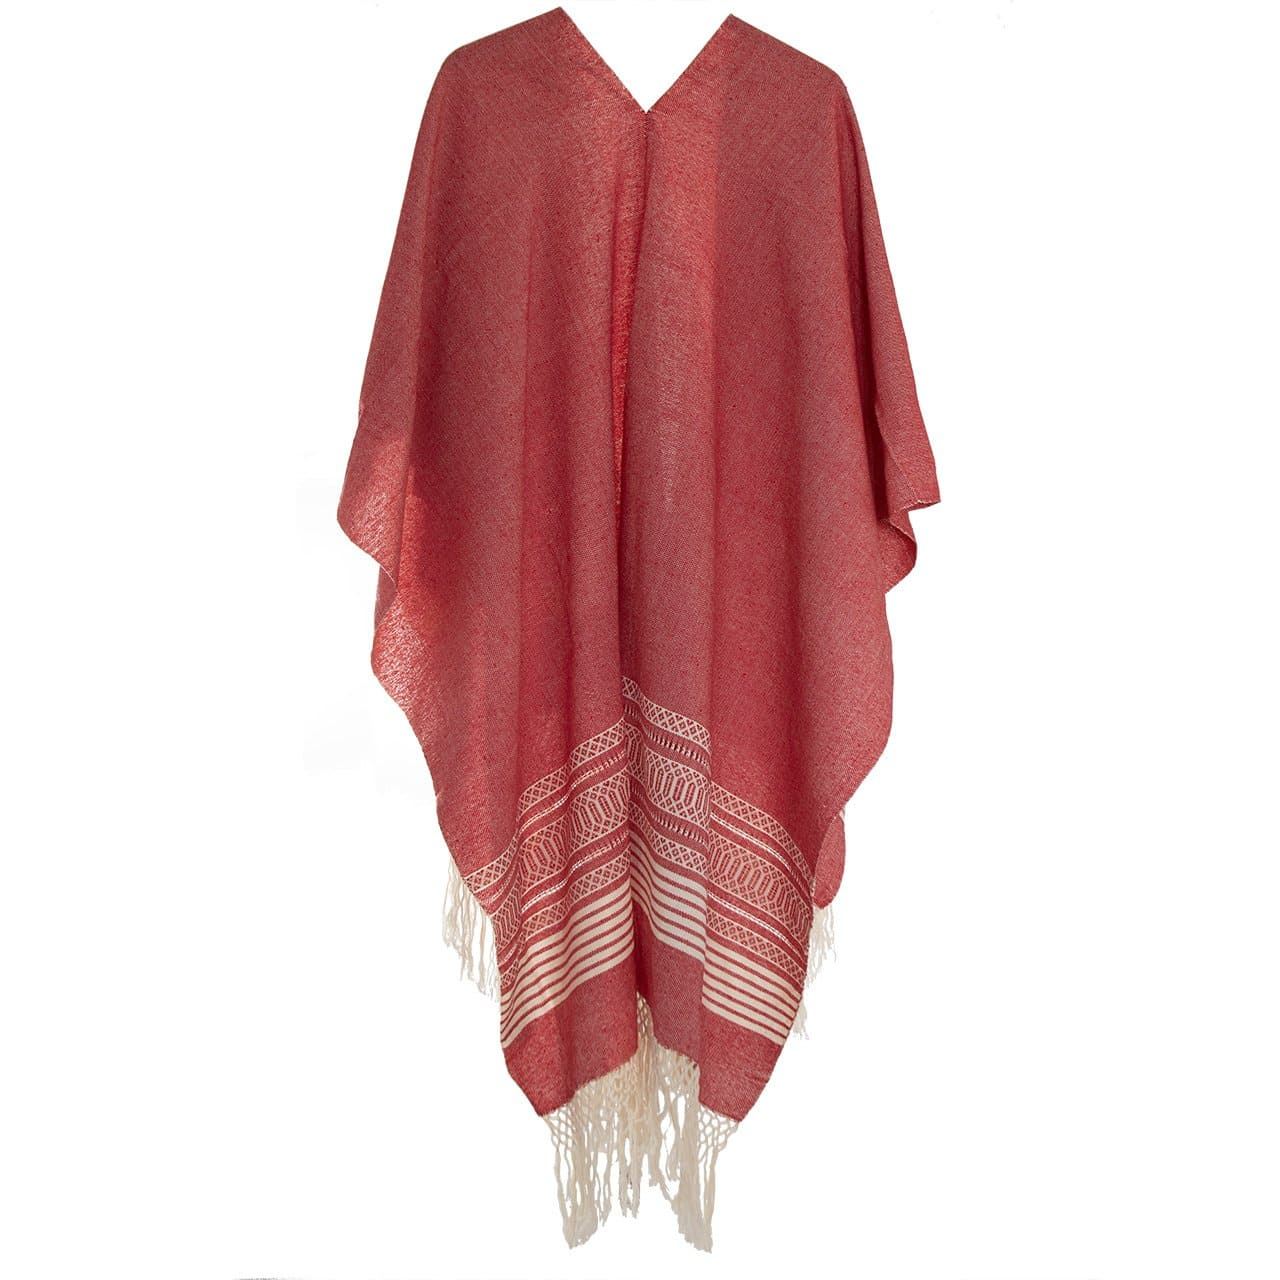 Warm Cape/Poncho in Solid Color and Lines